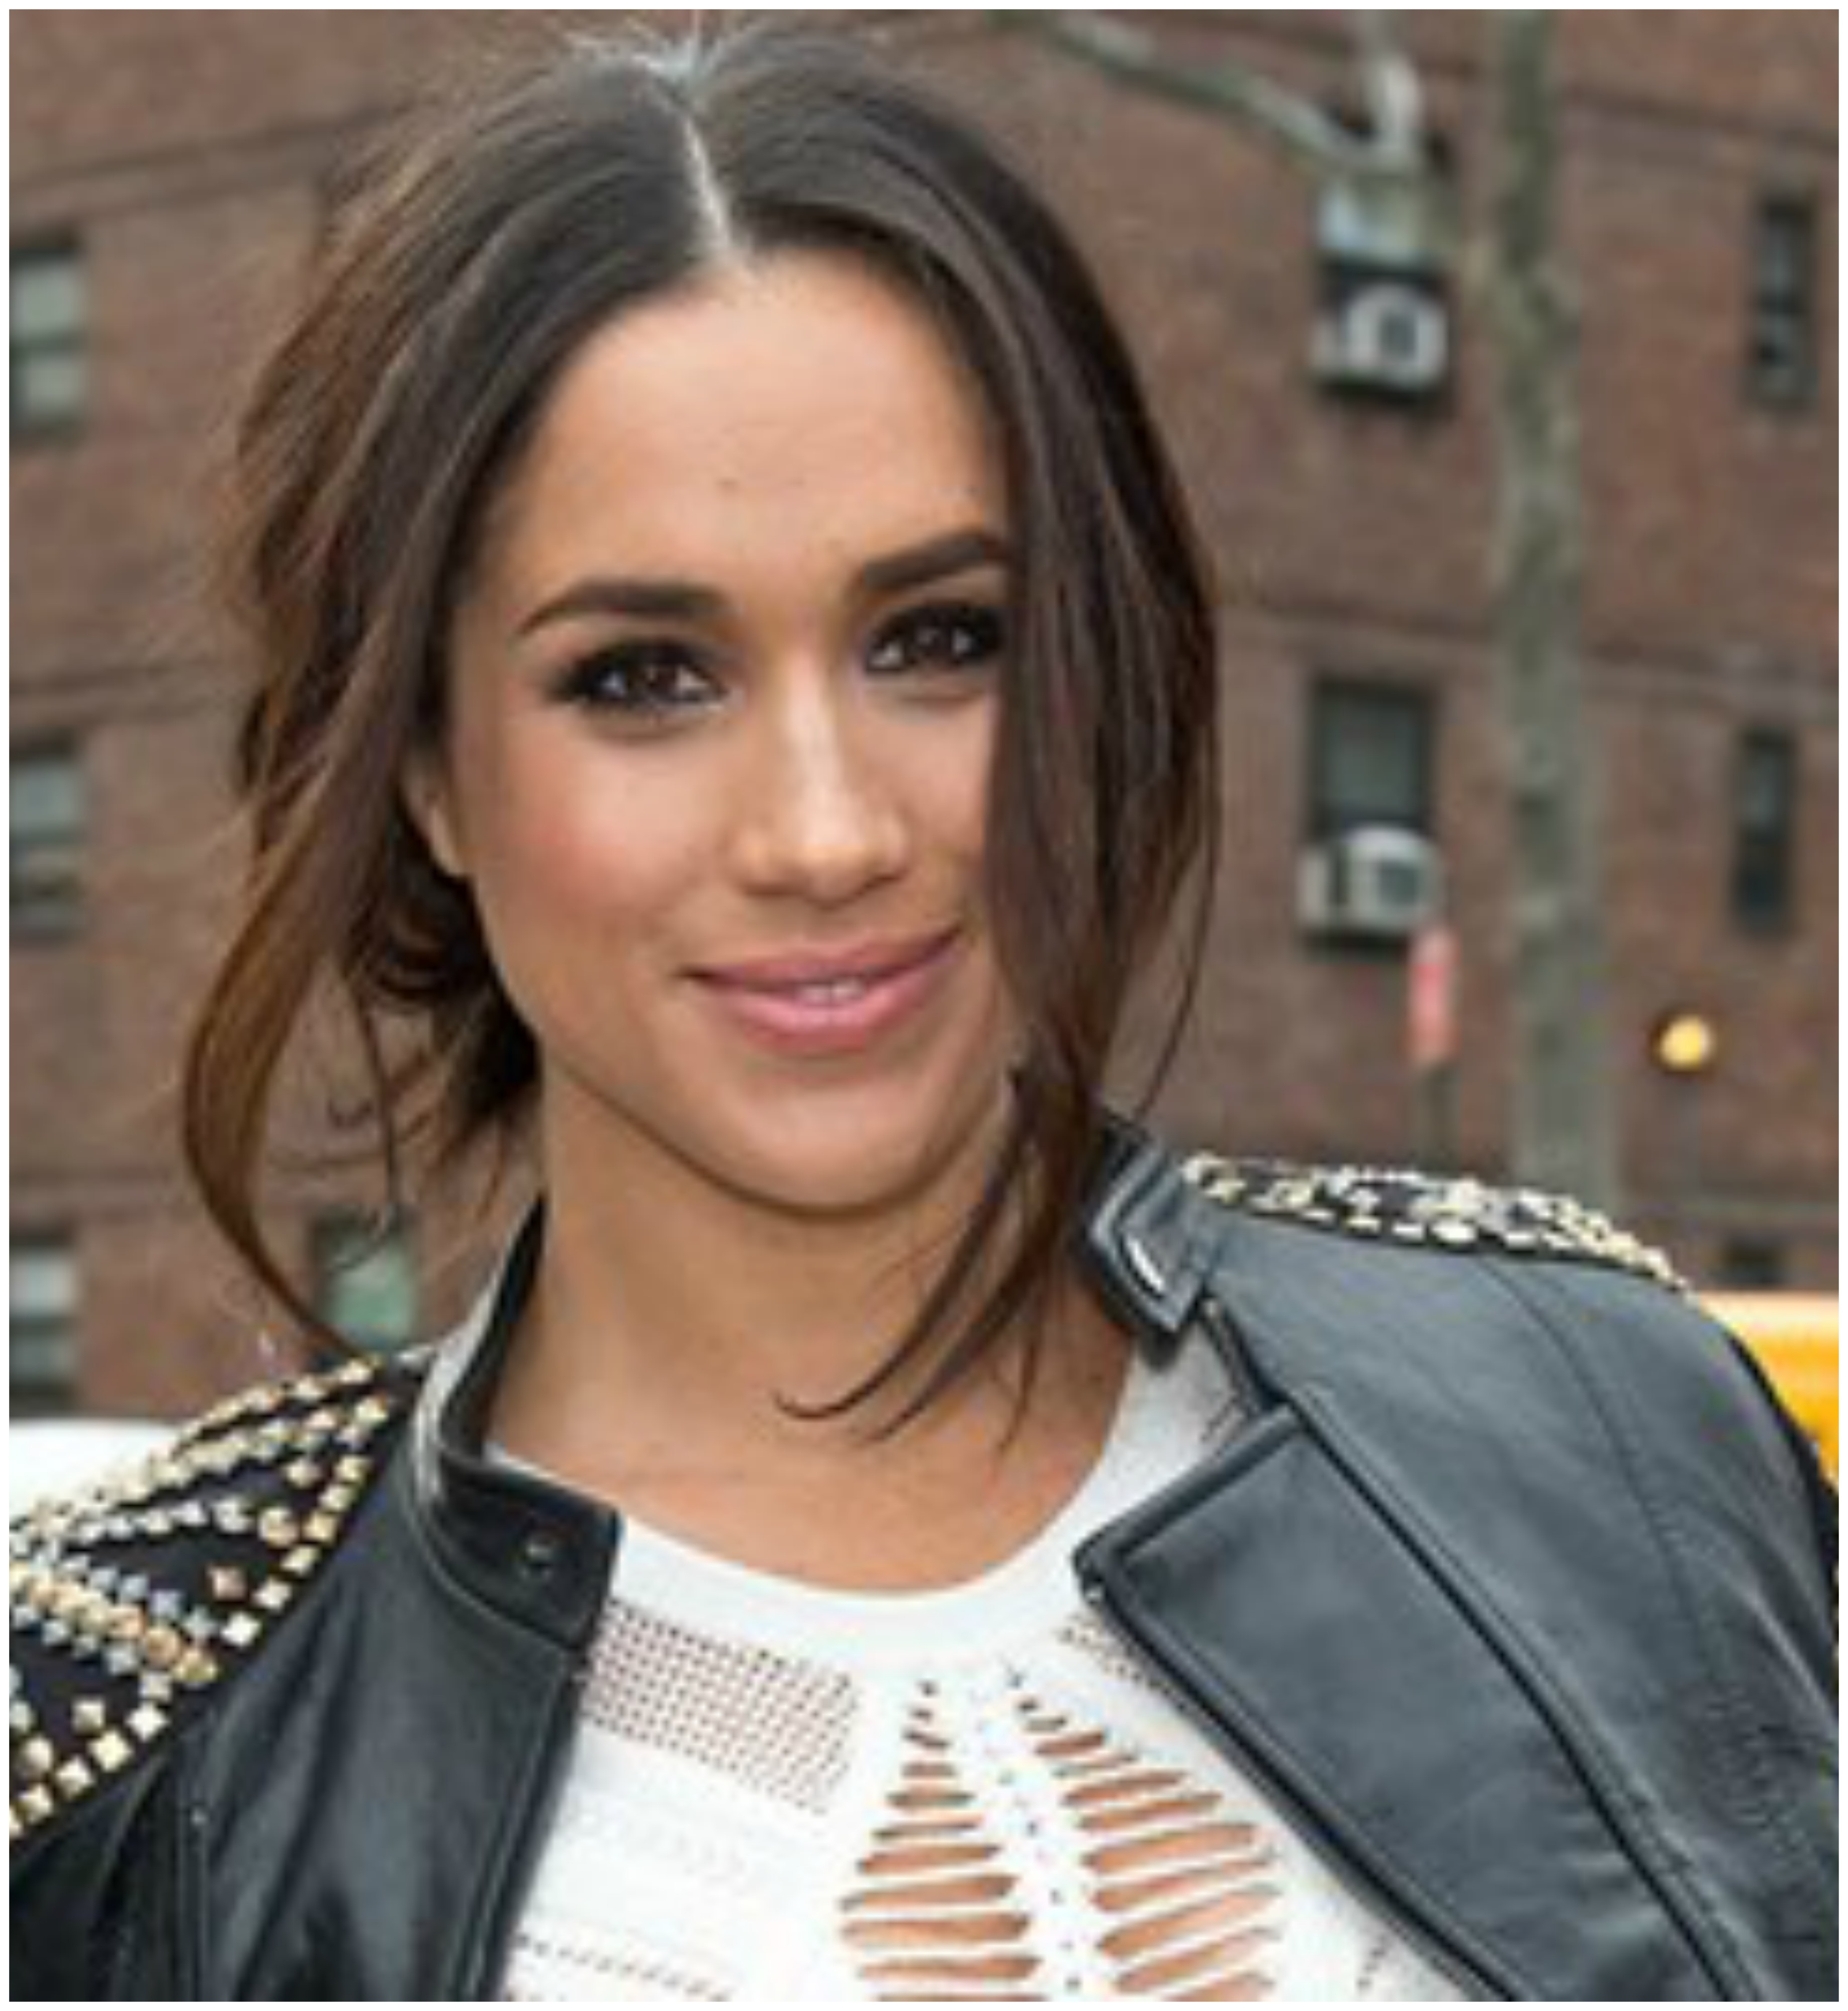 Meghan Markle's 15 MUST HAVE Cosmetics